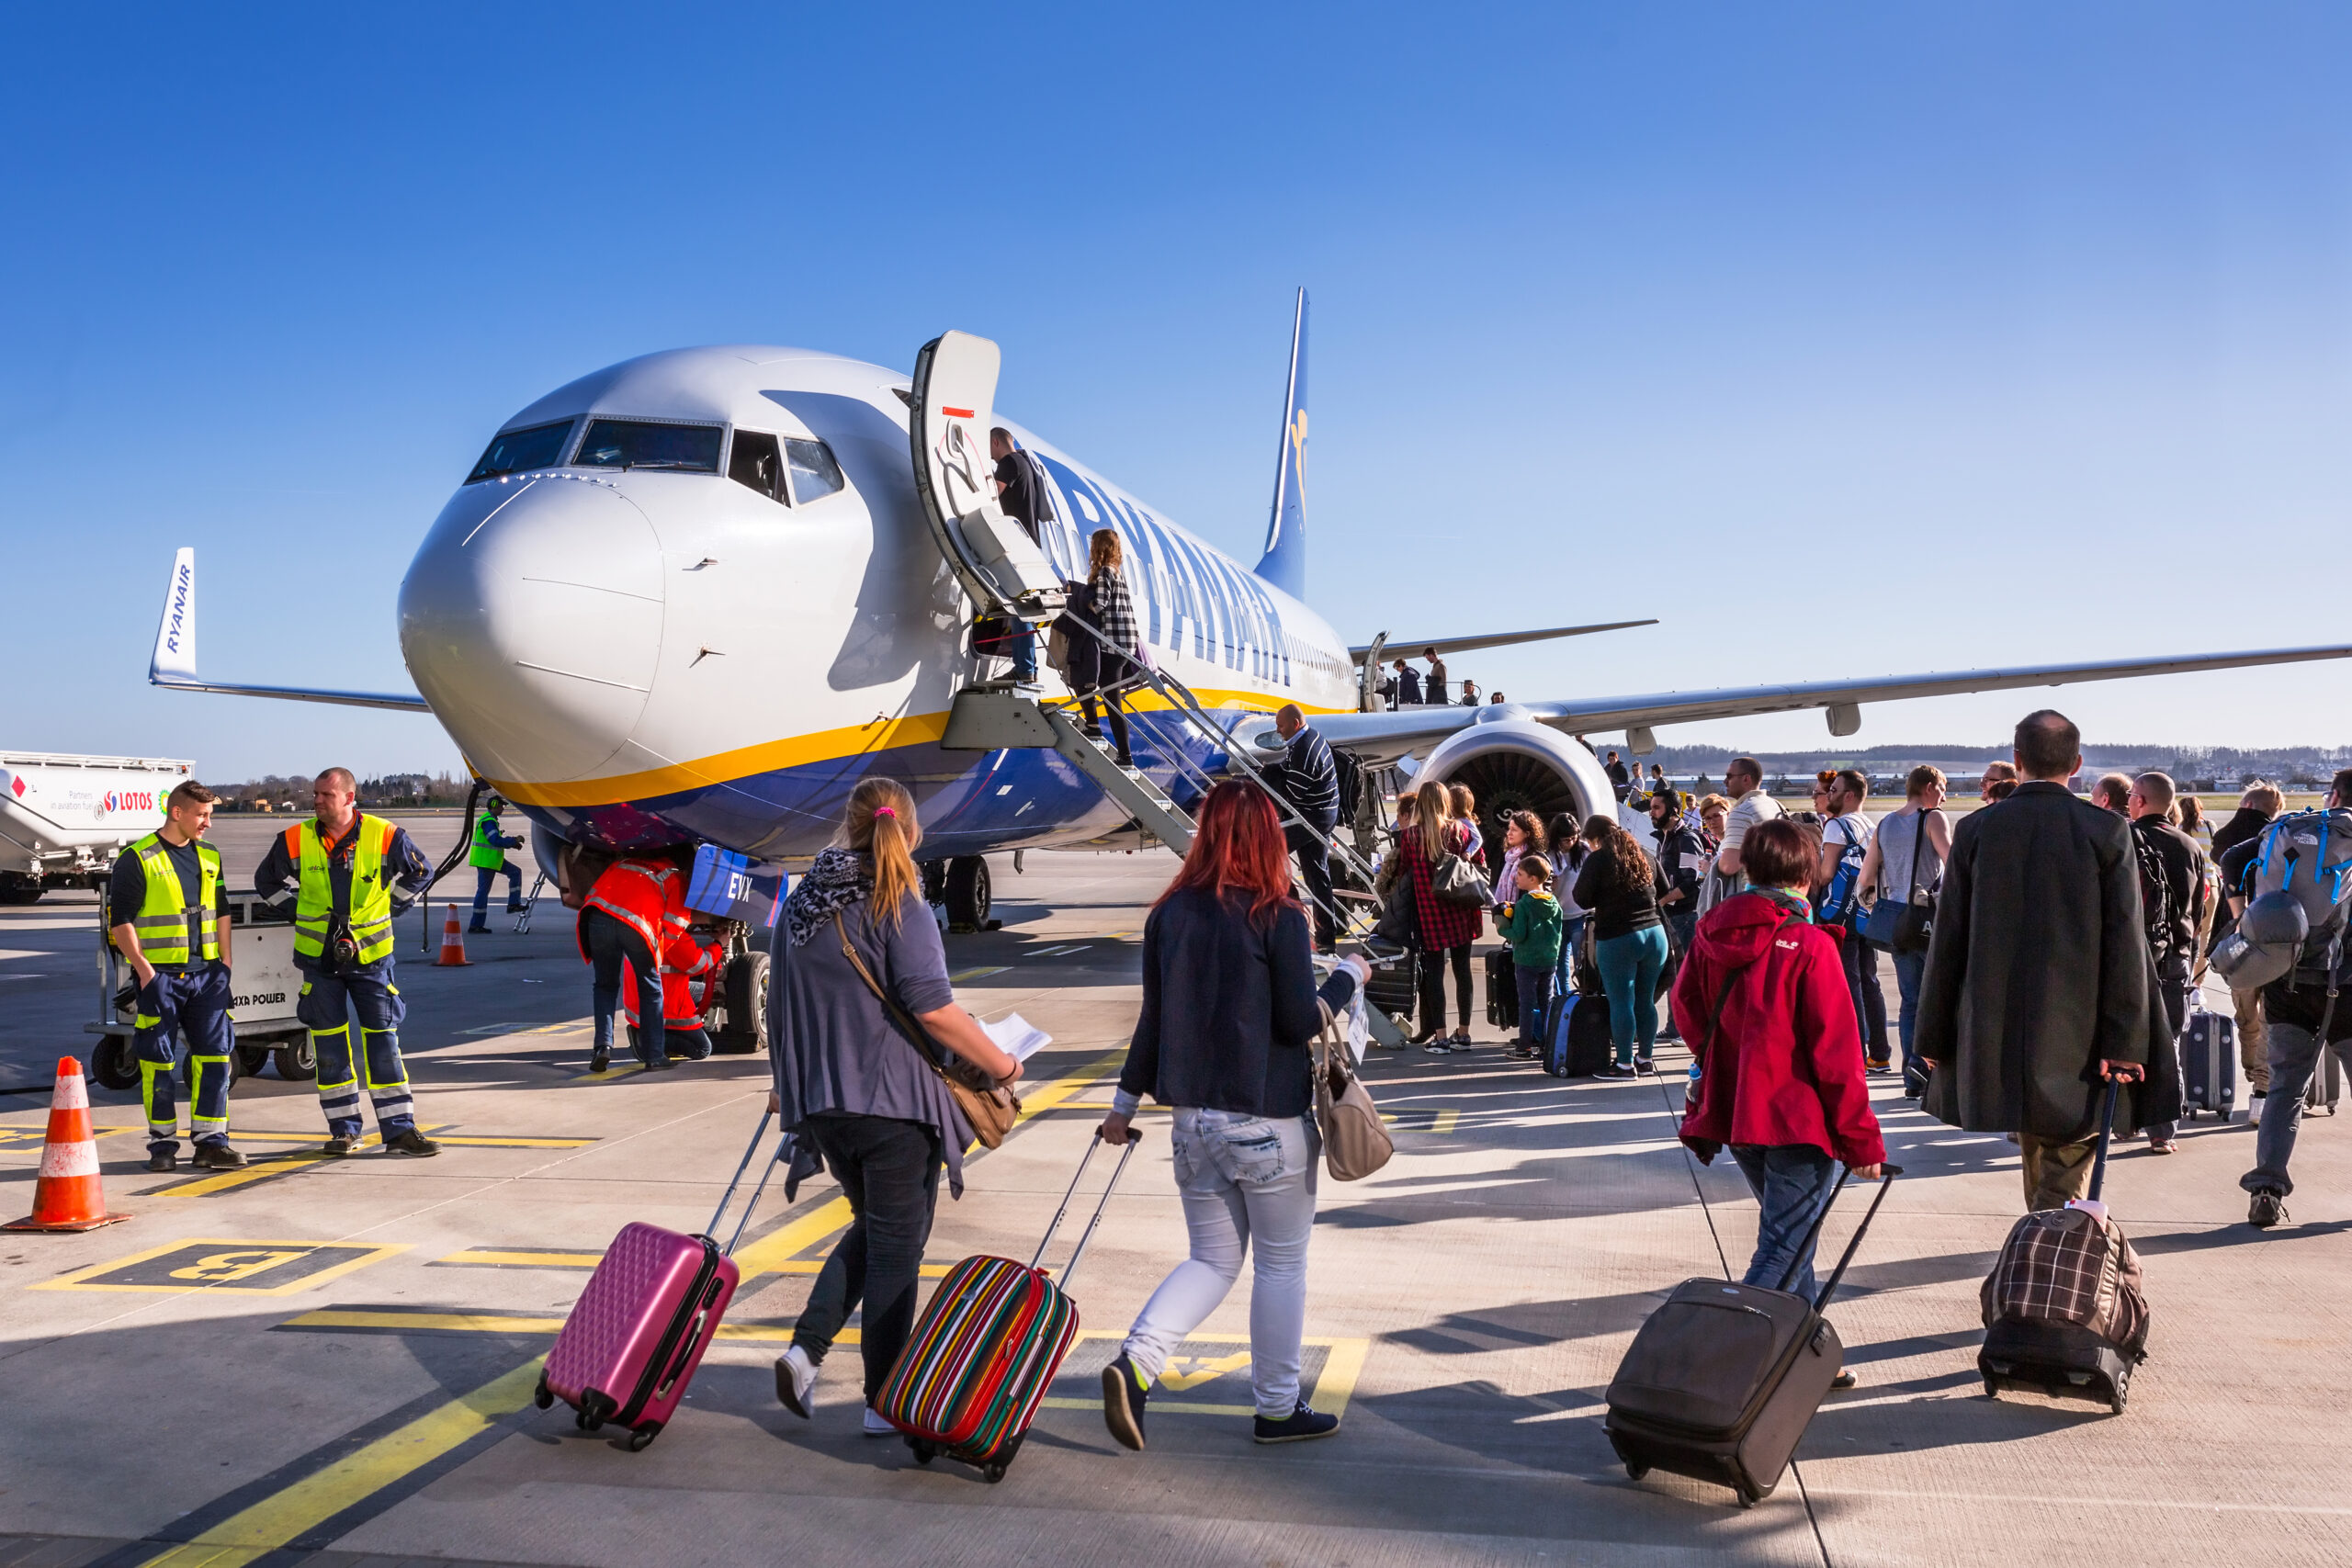 People boarding to Ryanair plane on Lech Walesa Airport in Gdansk. Ryanair operates over 300 aircraft and is the biggest low-cost airline company in Europe.